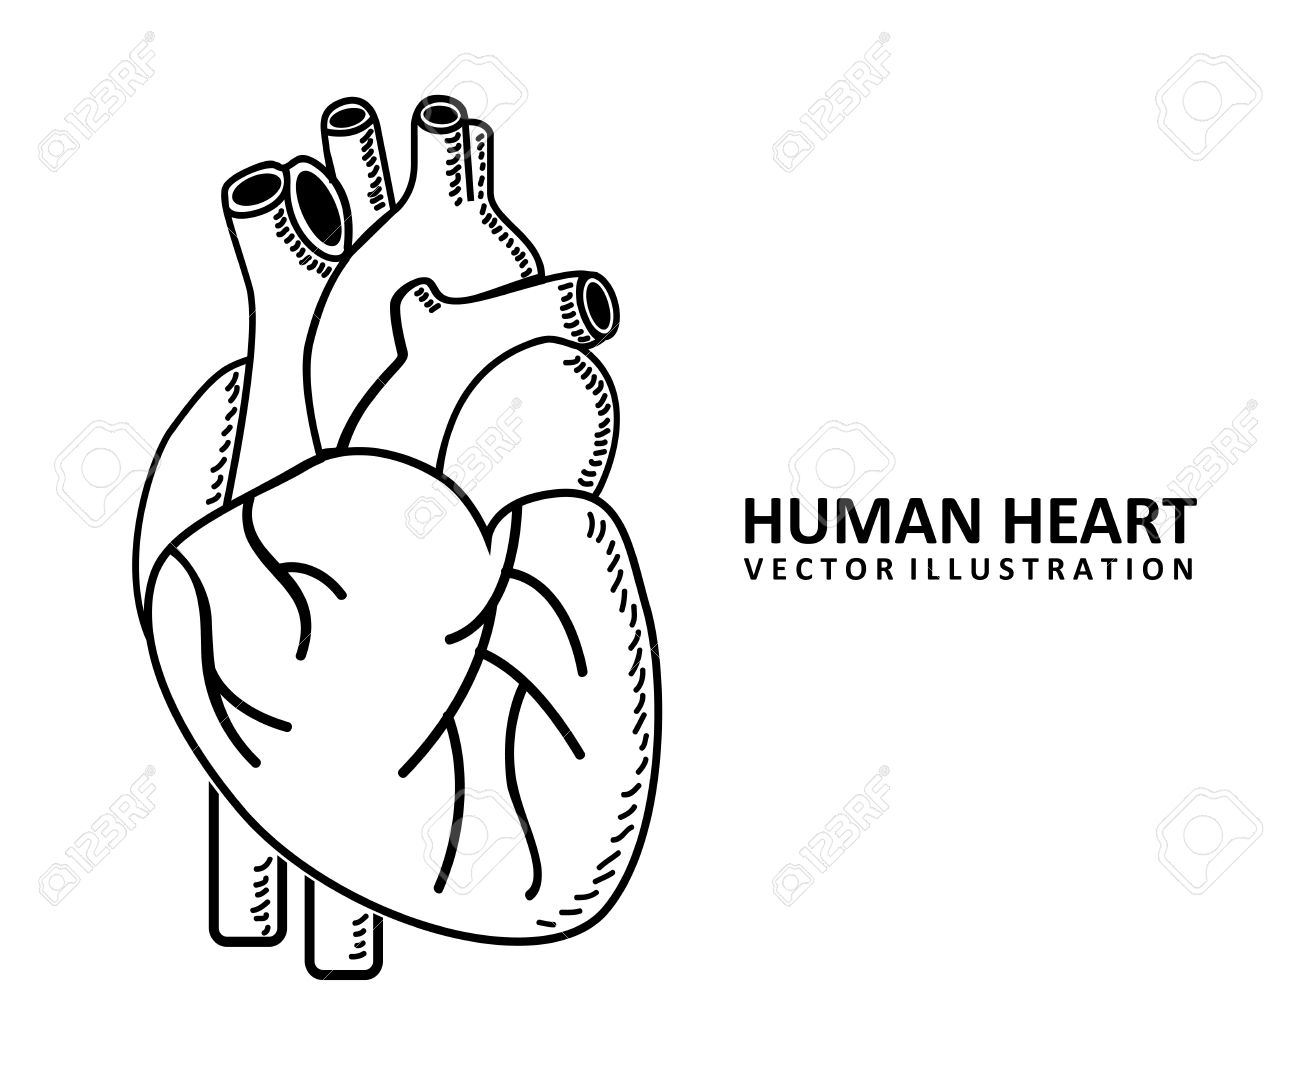 Human Heart Vector Black And White Vector Human Heart Design